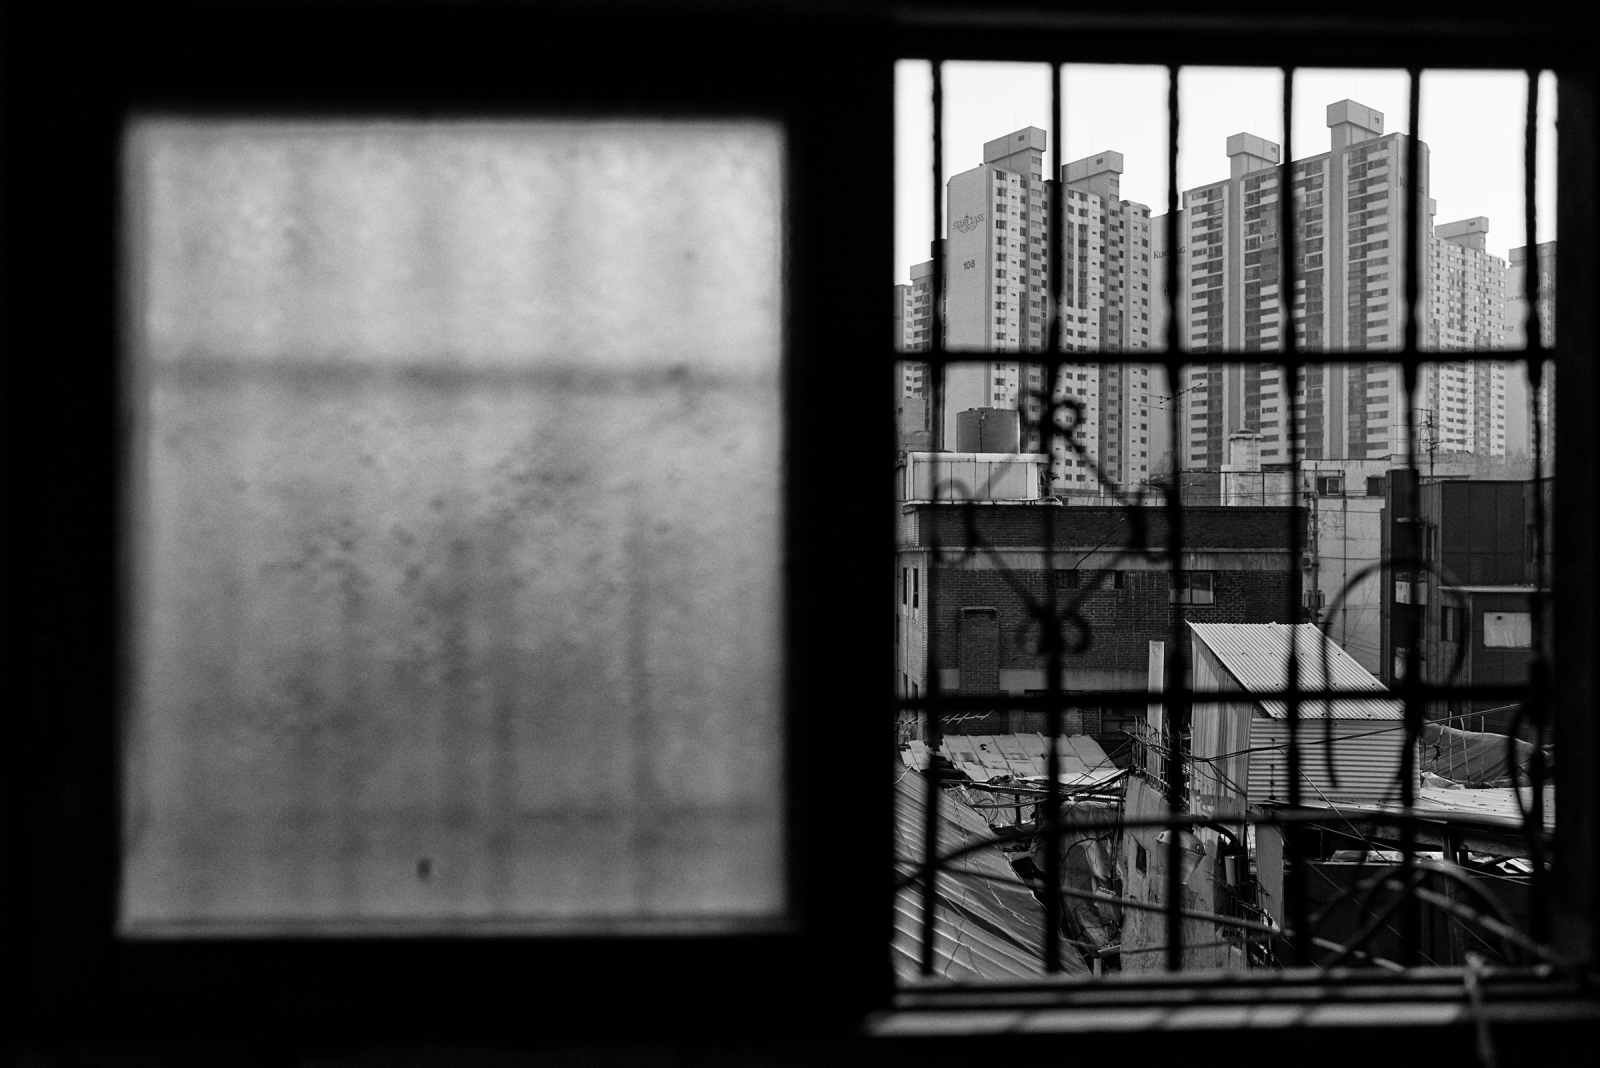 A view from an abandoned house in Muak-dong, Mar. 28, 2016, Seoul, South Korea. Seoul, South Korea.